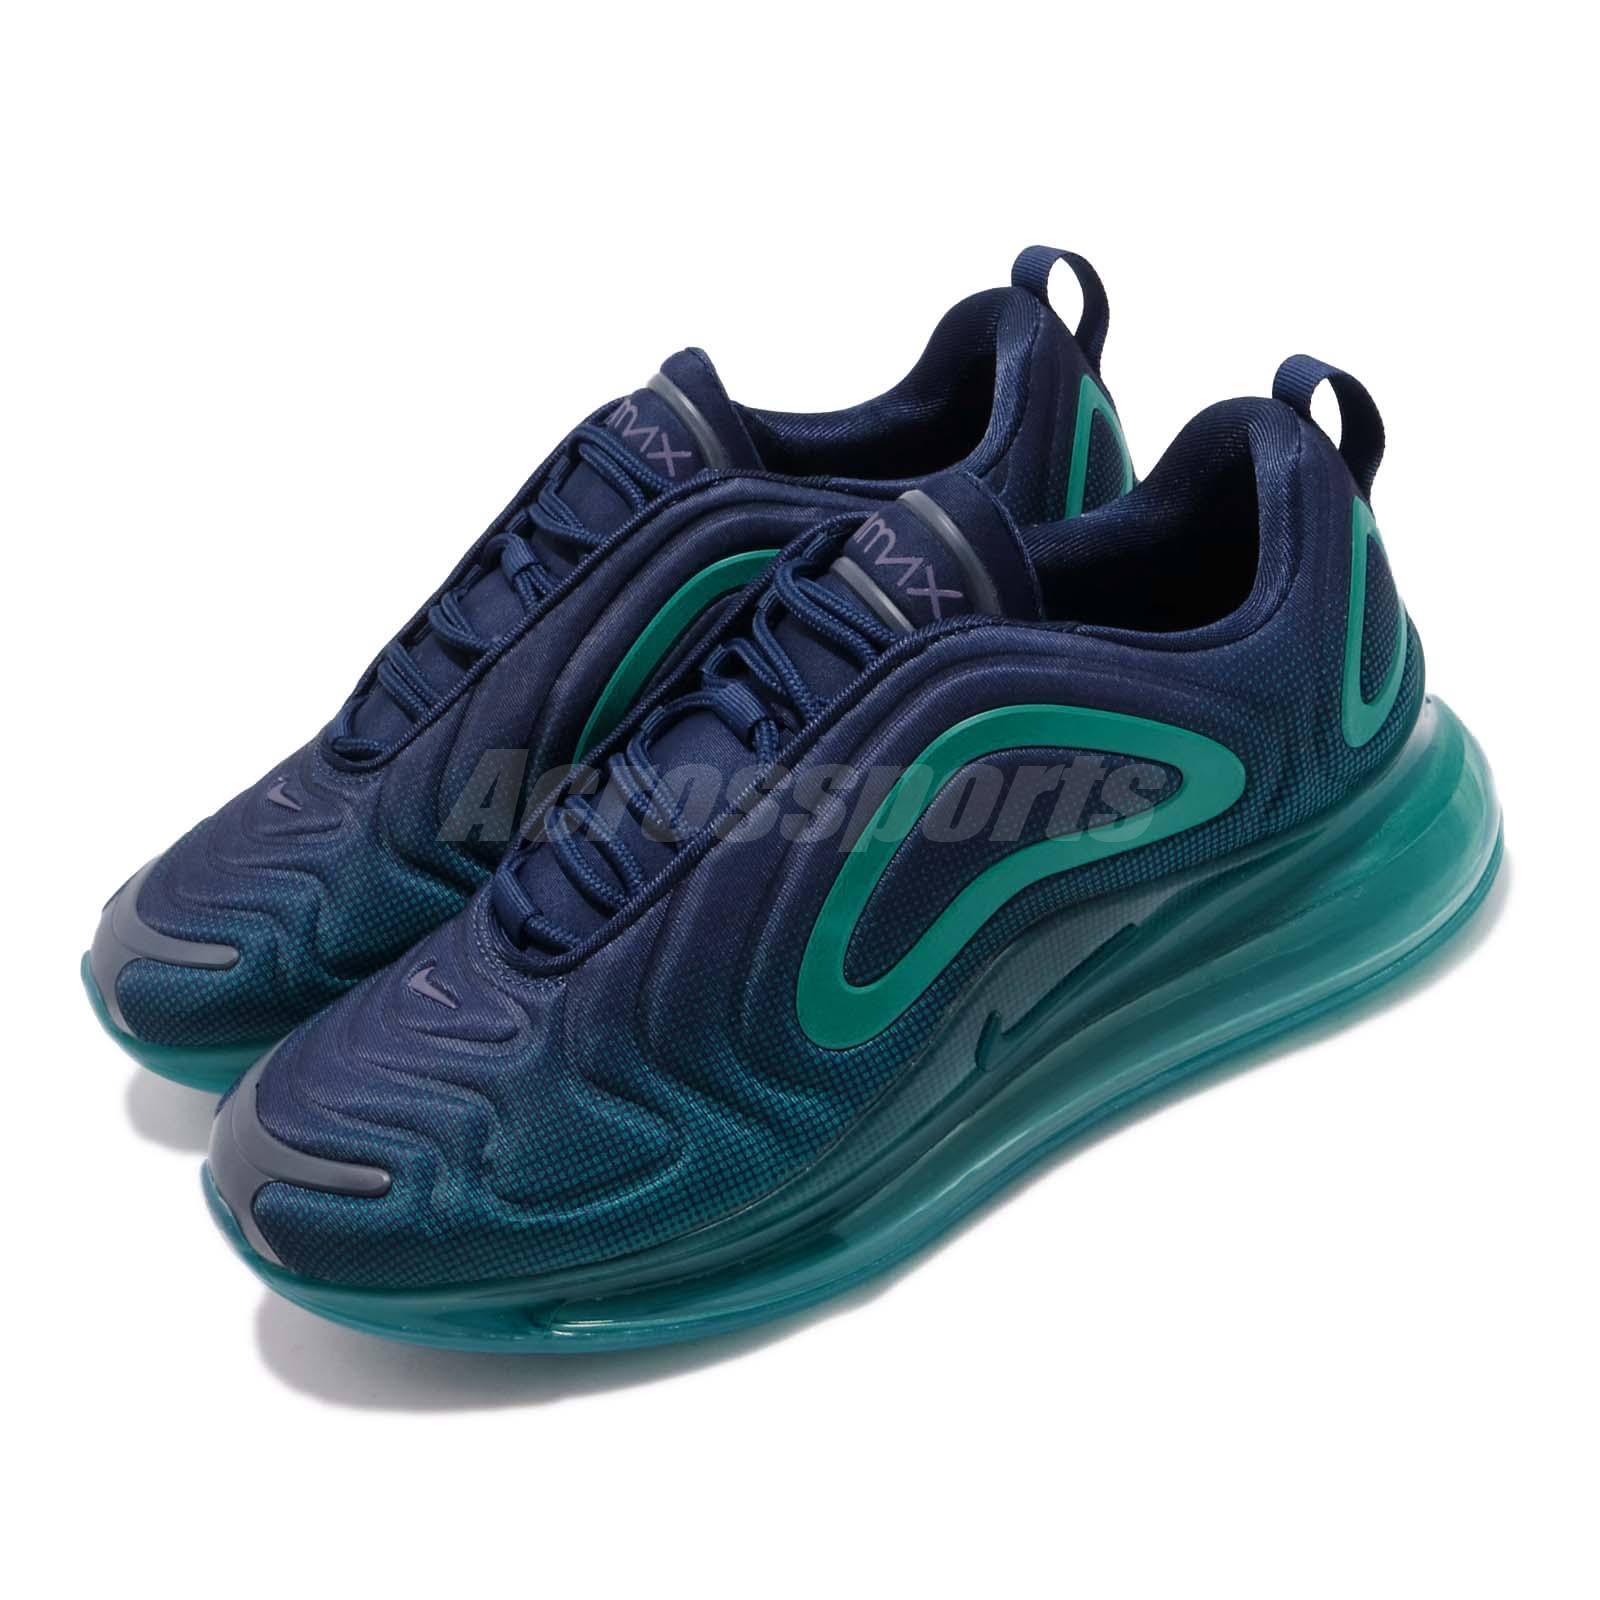 Details about Nike Air Max 720 Nightshade Blue Void Men Running Shoes Sneakers AO2924 405